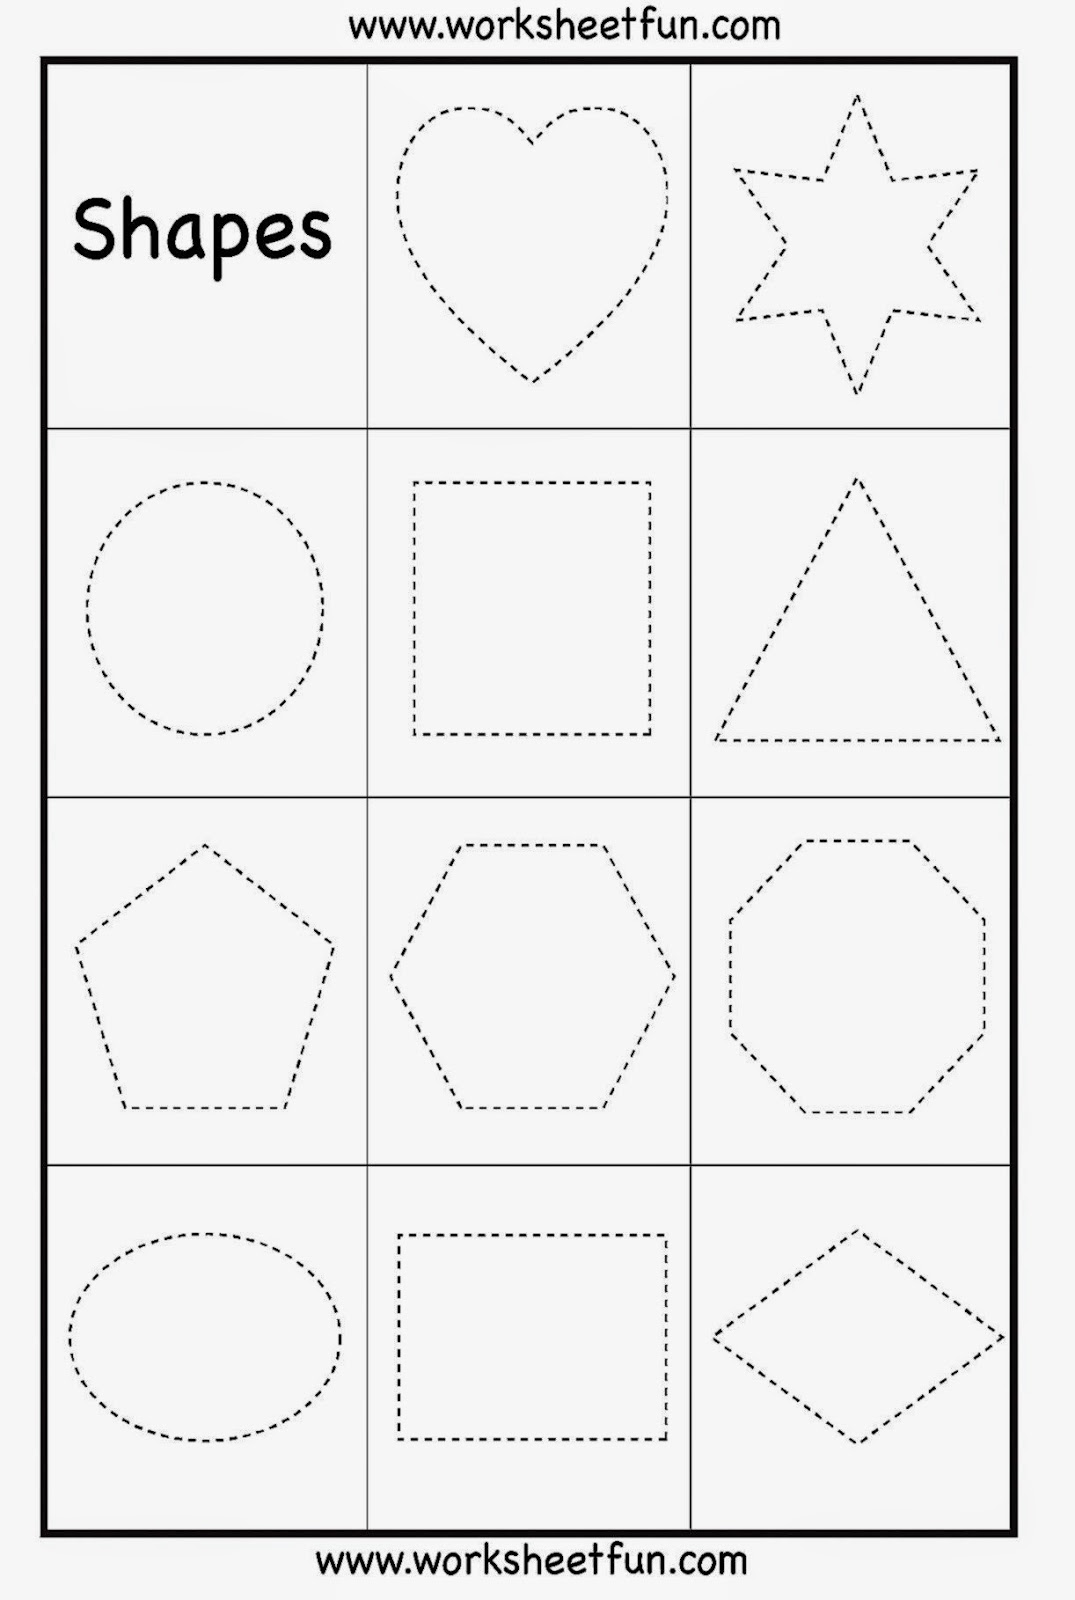 Free Printable Worksheets : Free preschool printables coloring sheet